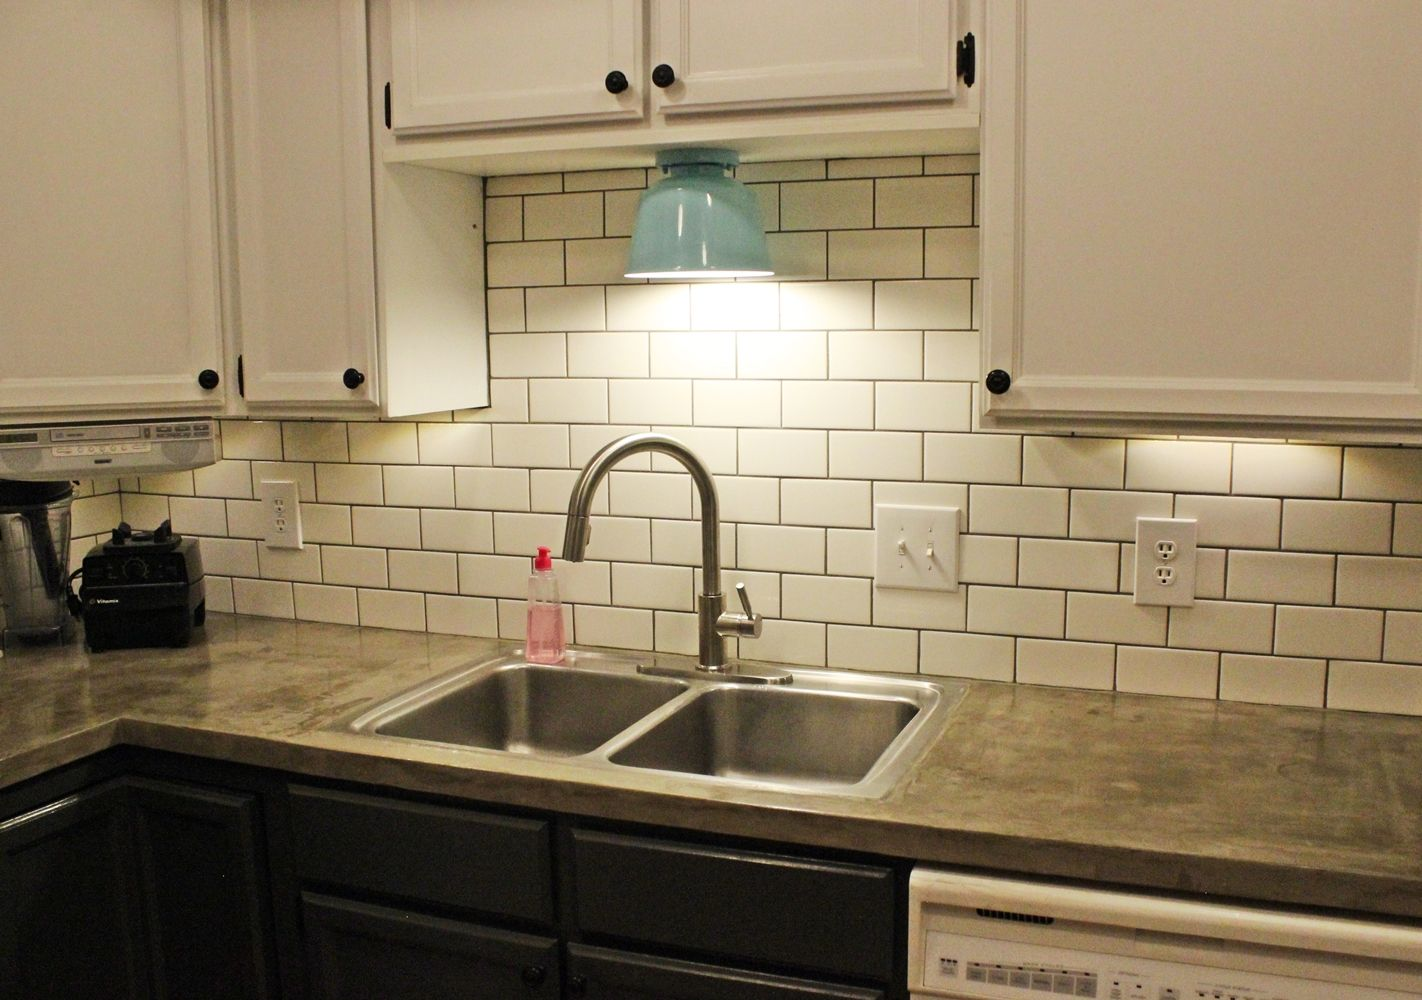 How to install a kitchen sprayer faucet